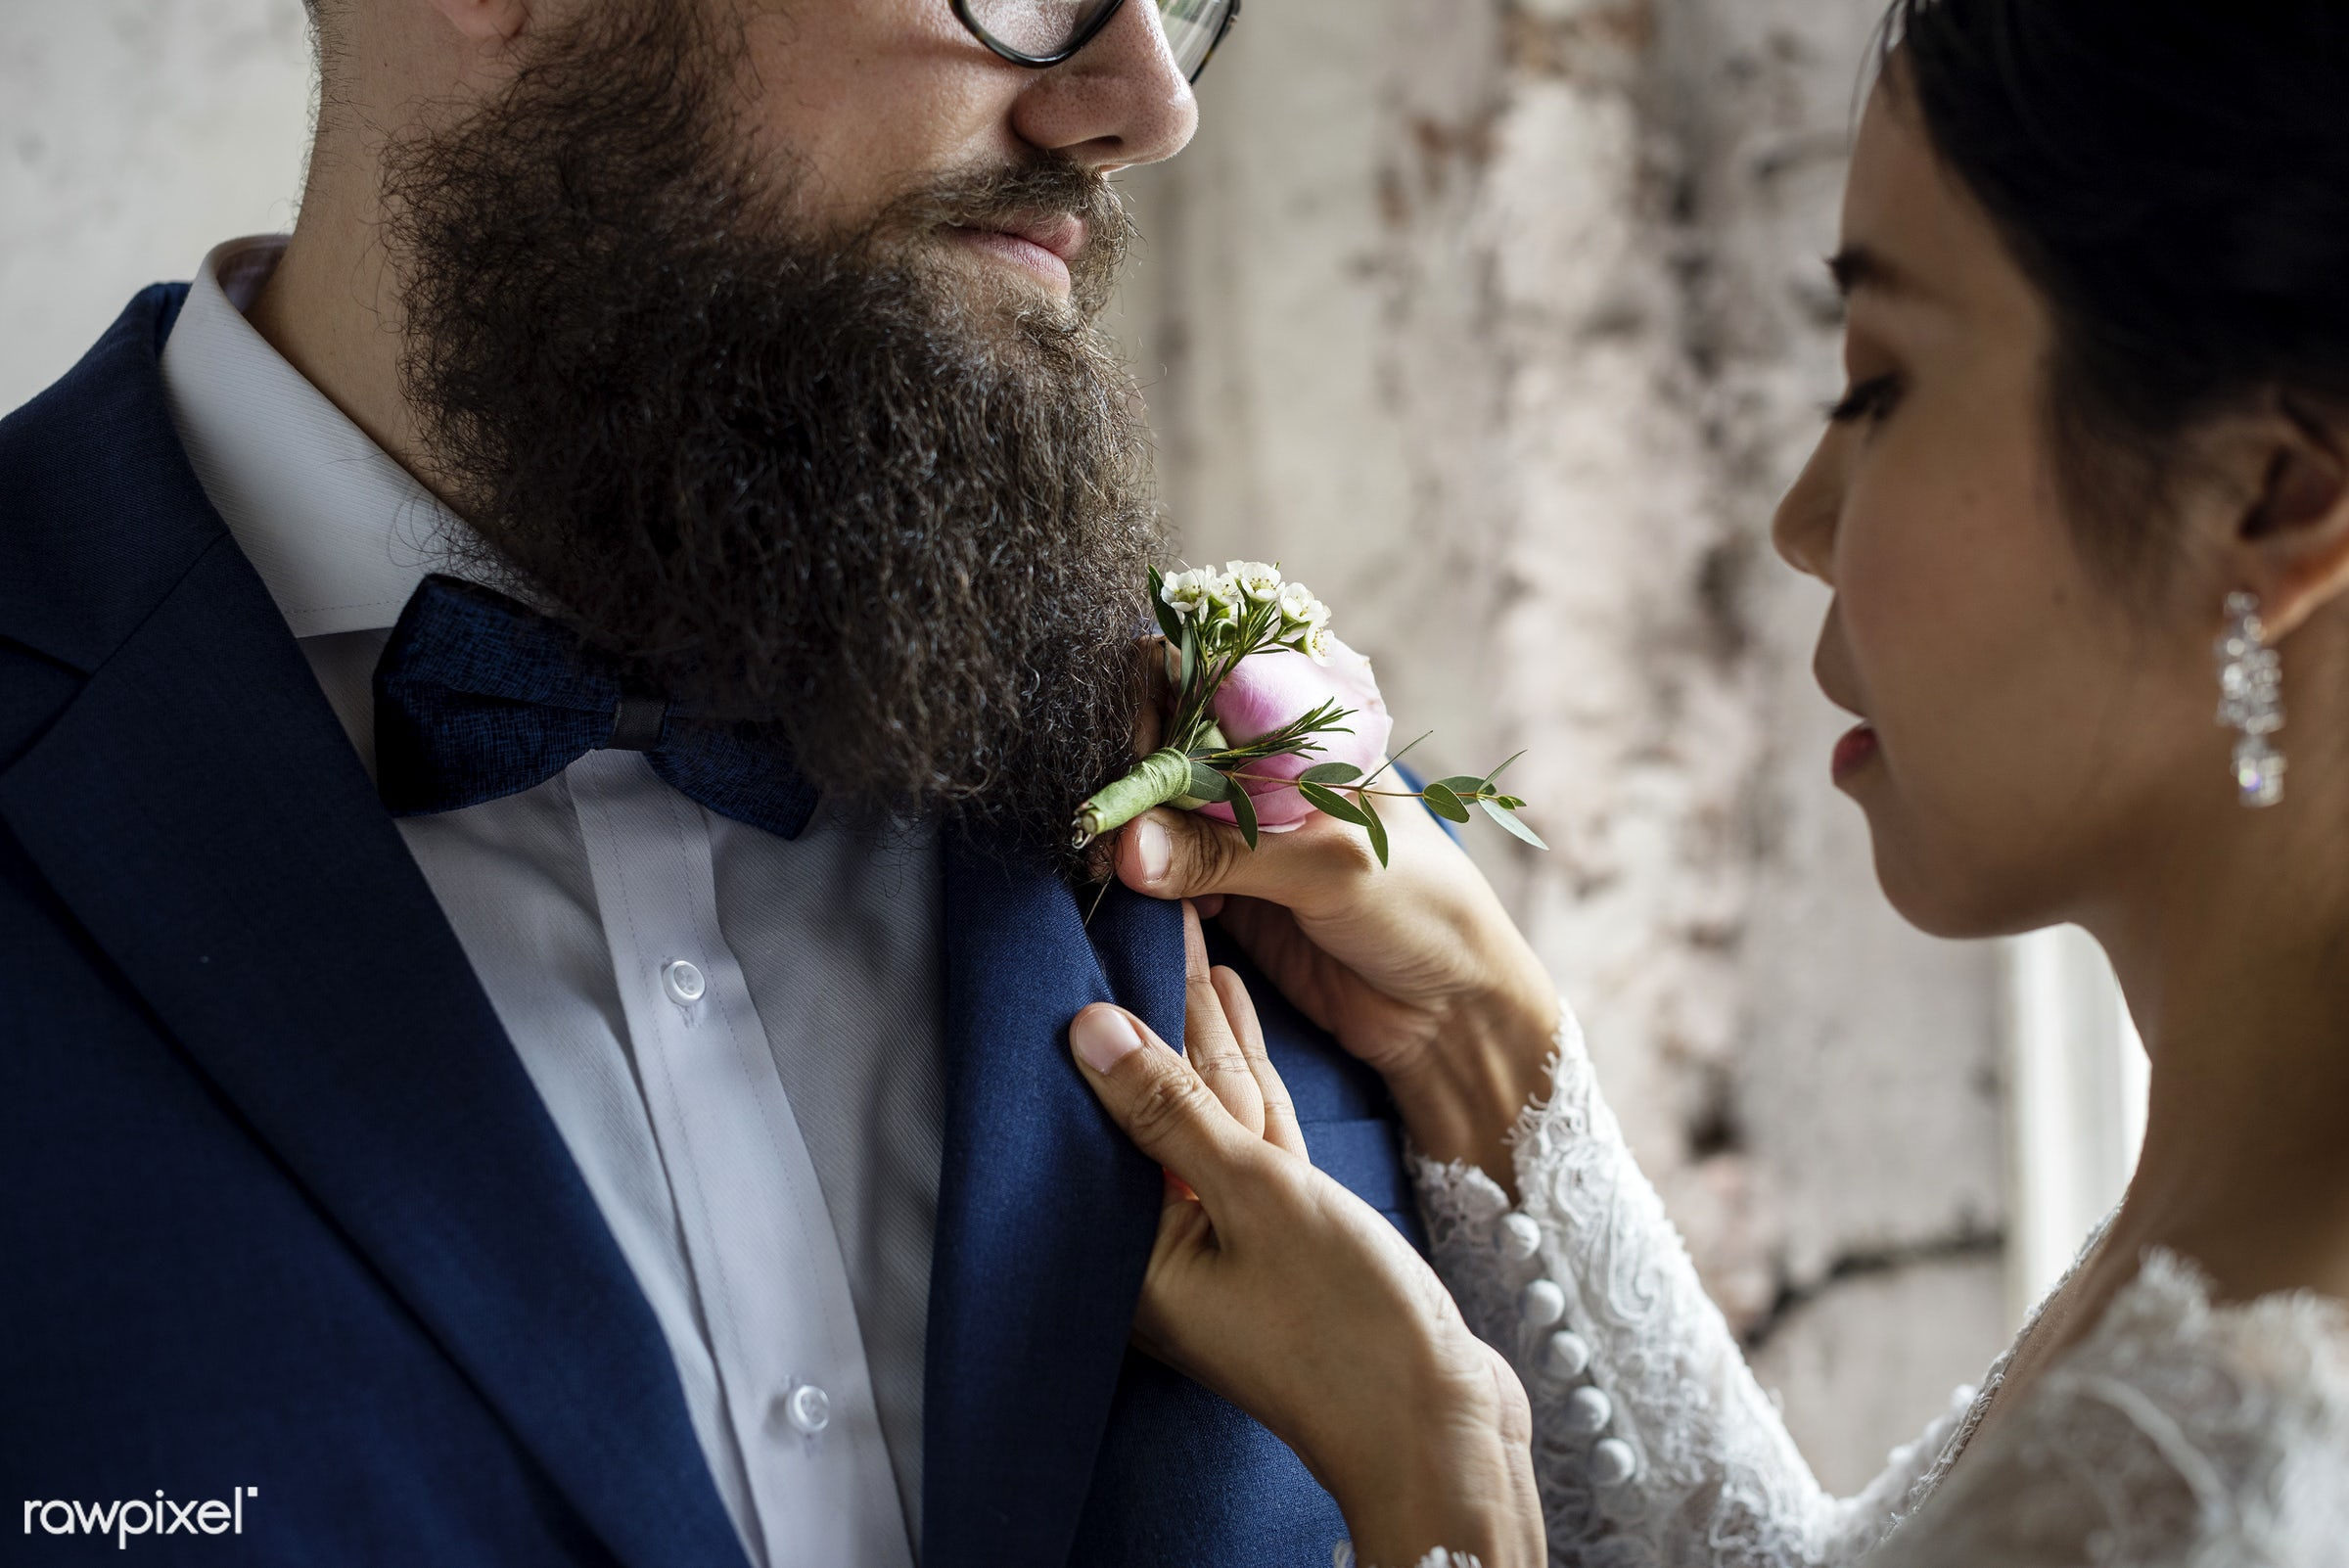 bouquet, occasion, together, asian, caucasian, love, married, hands, couple, bride, cheerful, smiling, flower, put on,...